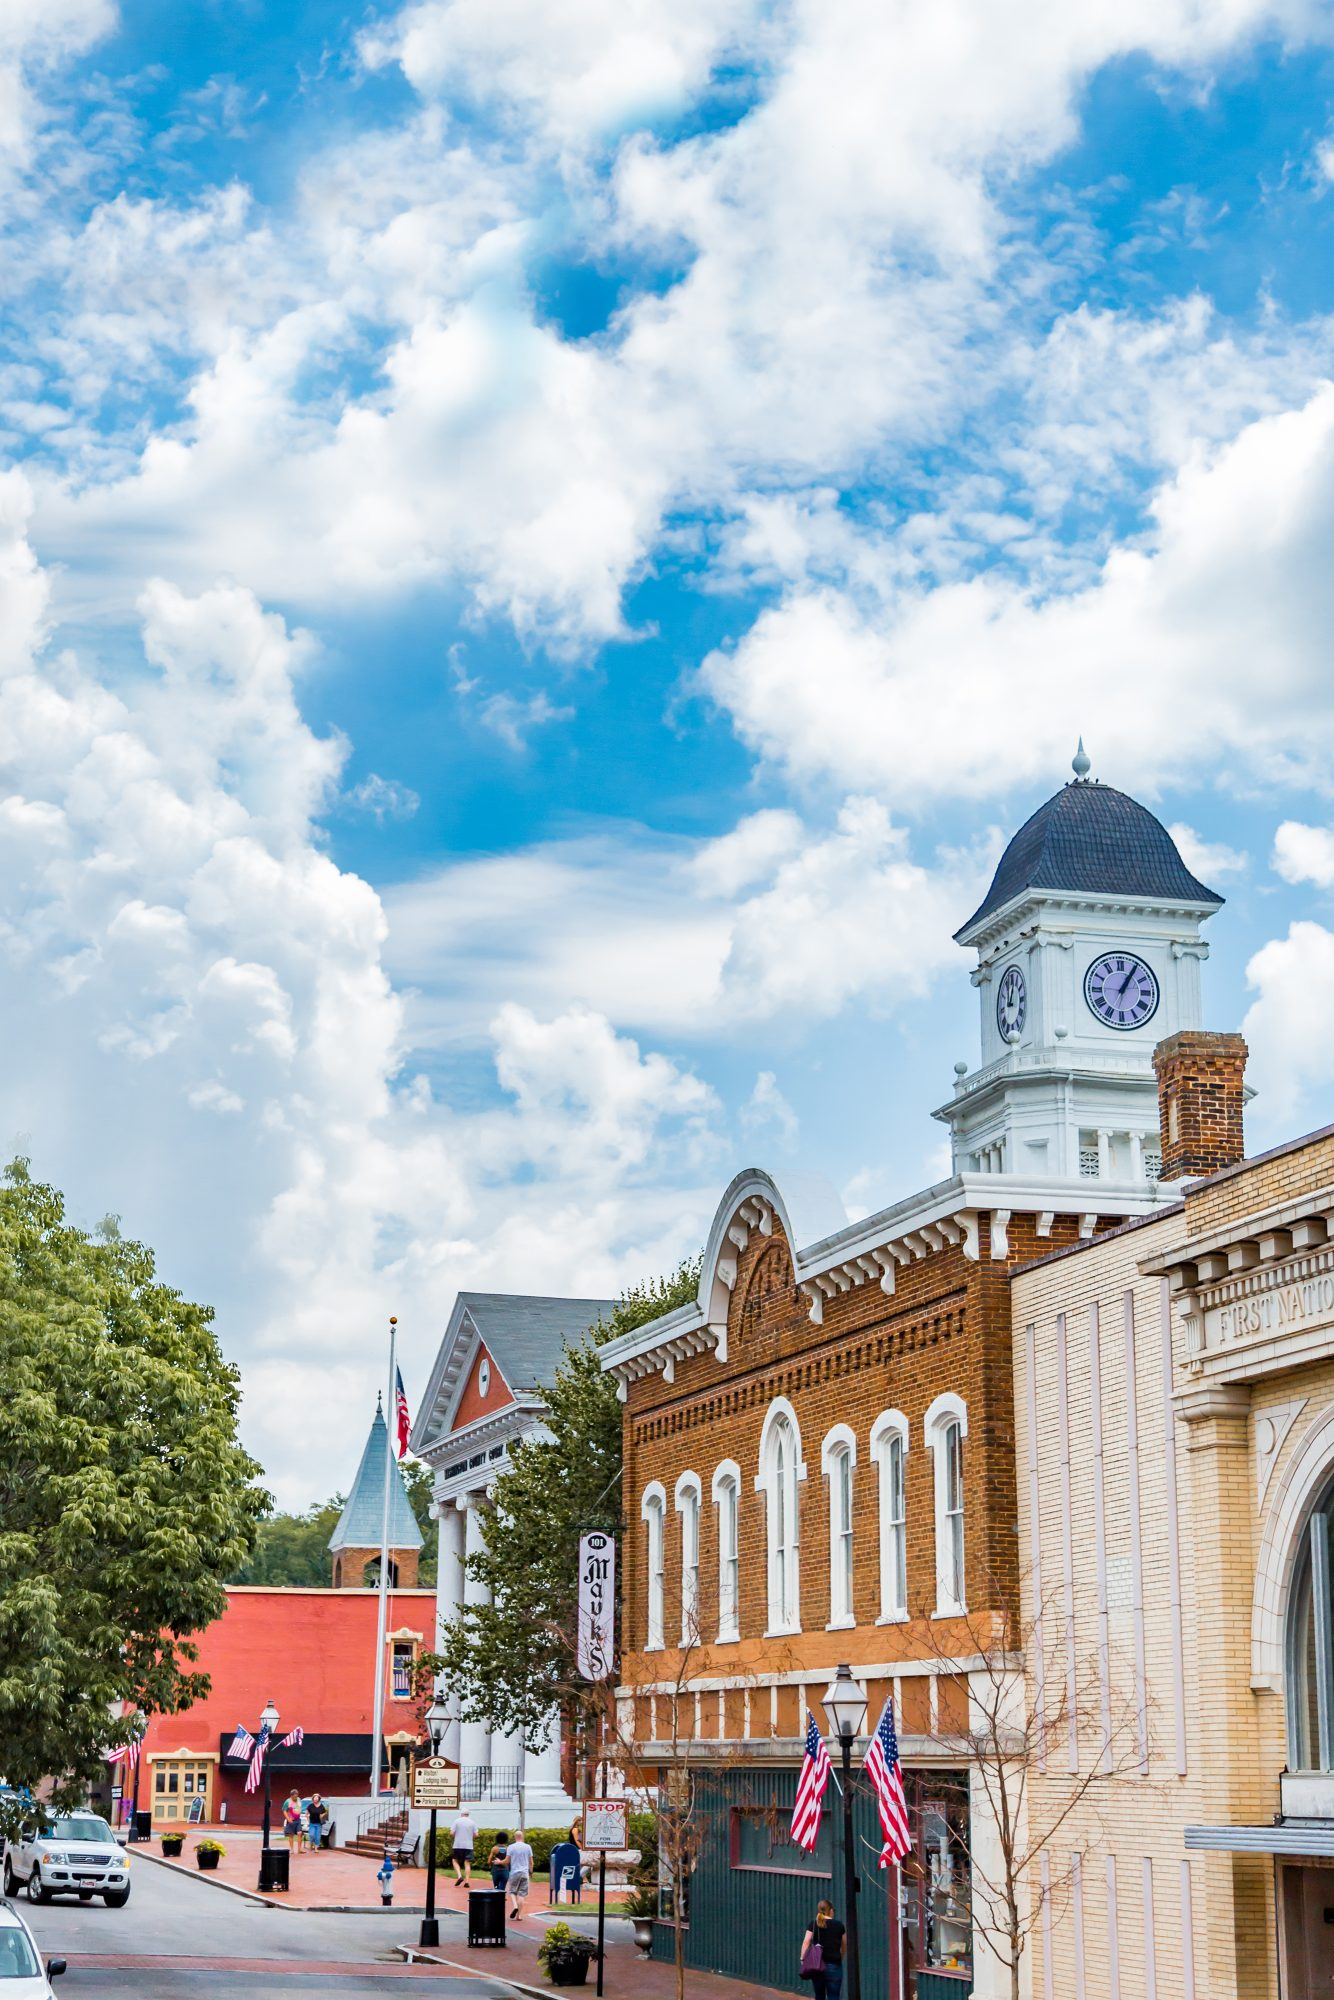 Main Street in Jonesborough, TN